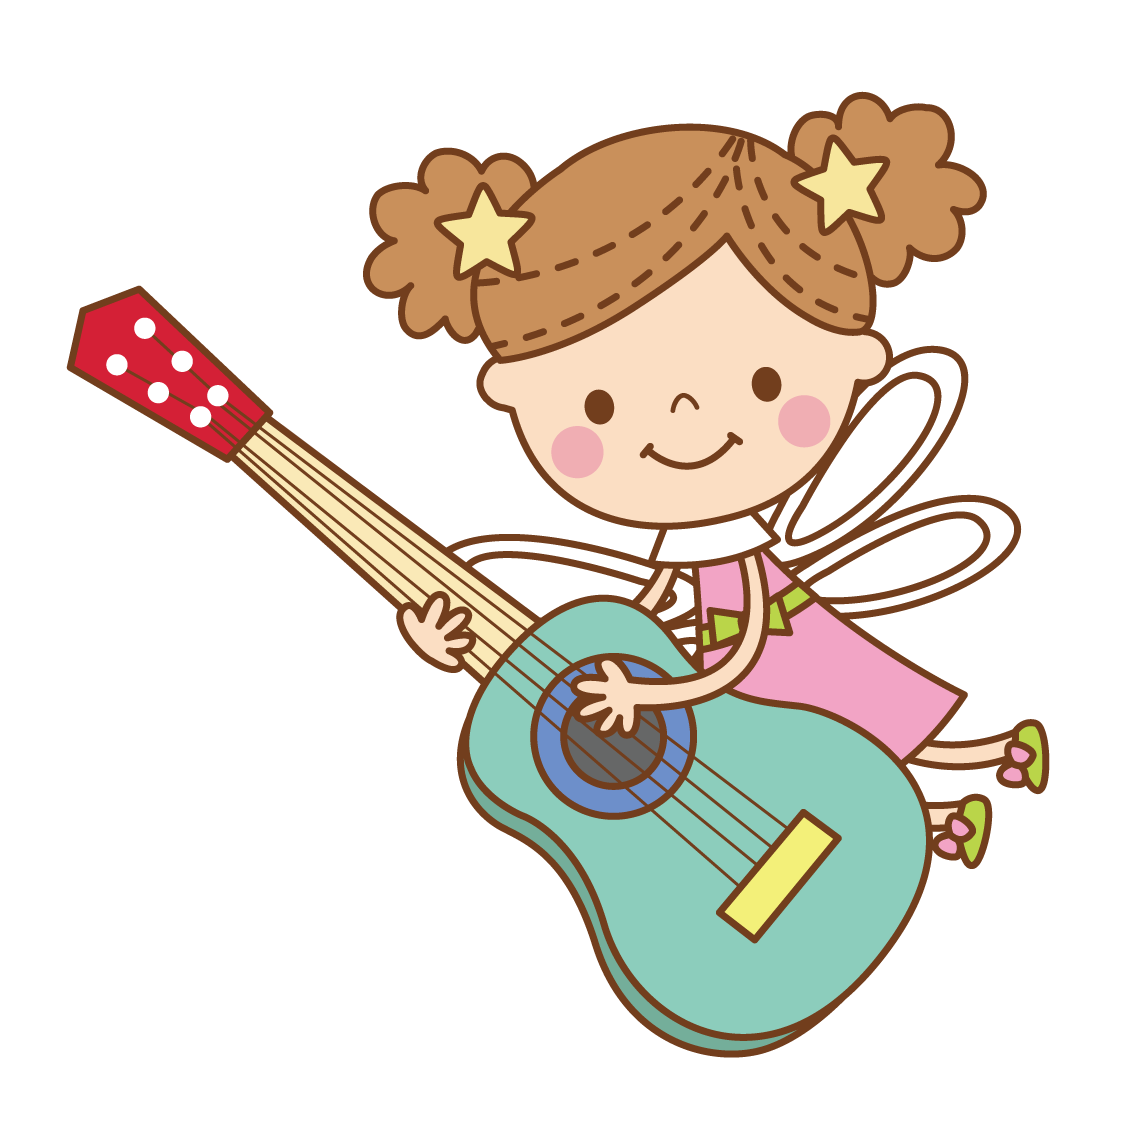 Download Vector Clipart Acoustic Guitar Png Image Dimensions 999 X 1413 Size 258 Kb Tag Use As Guitar Electric Guitar Guitar Guitar Clipart Guitar Vector